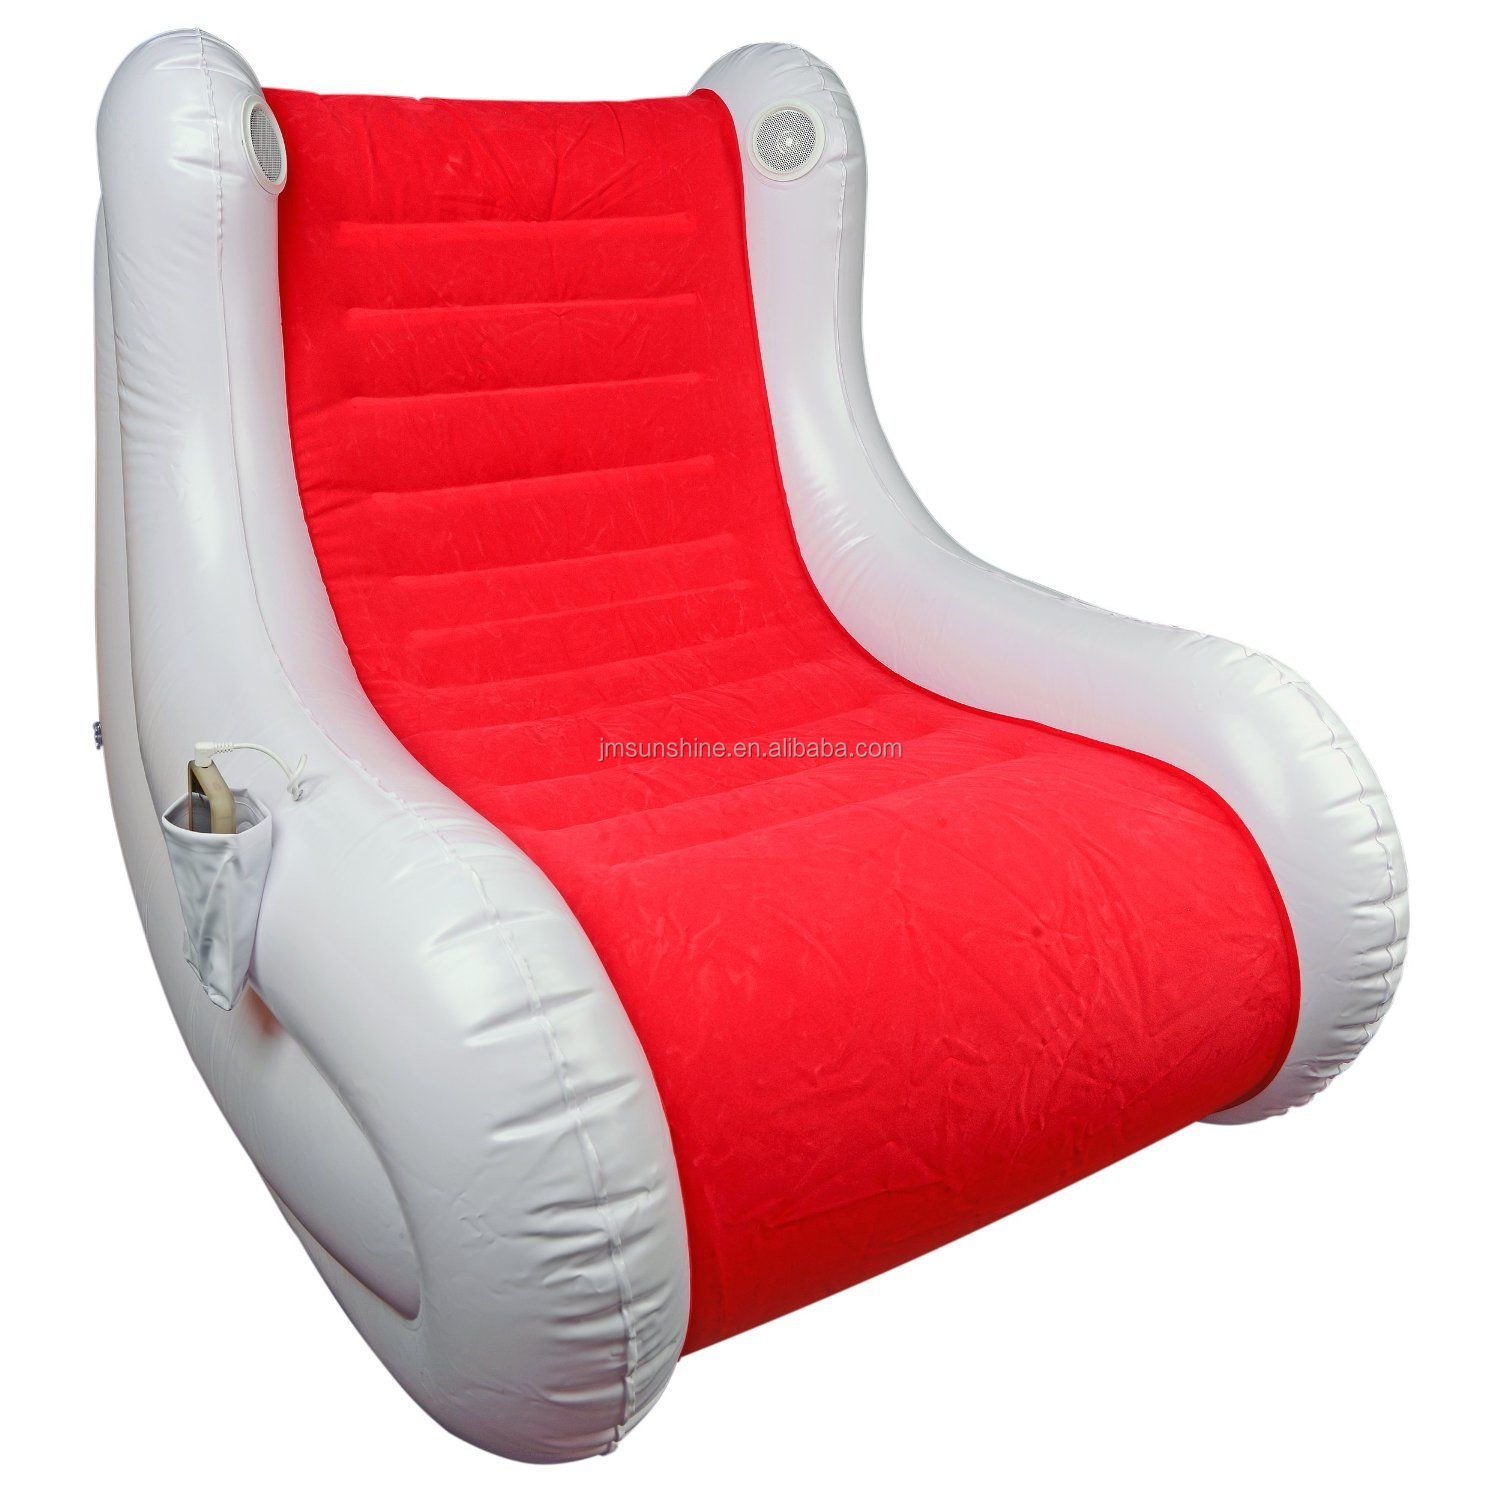 Inflatable Sofa Clear: Pvc Inflatable Modern Eames Sofa Chair And Armchairs